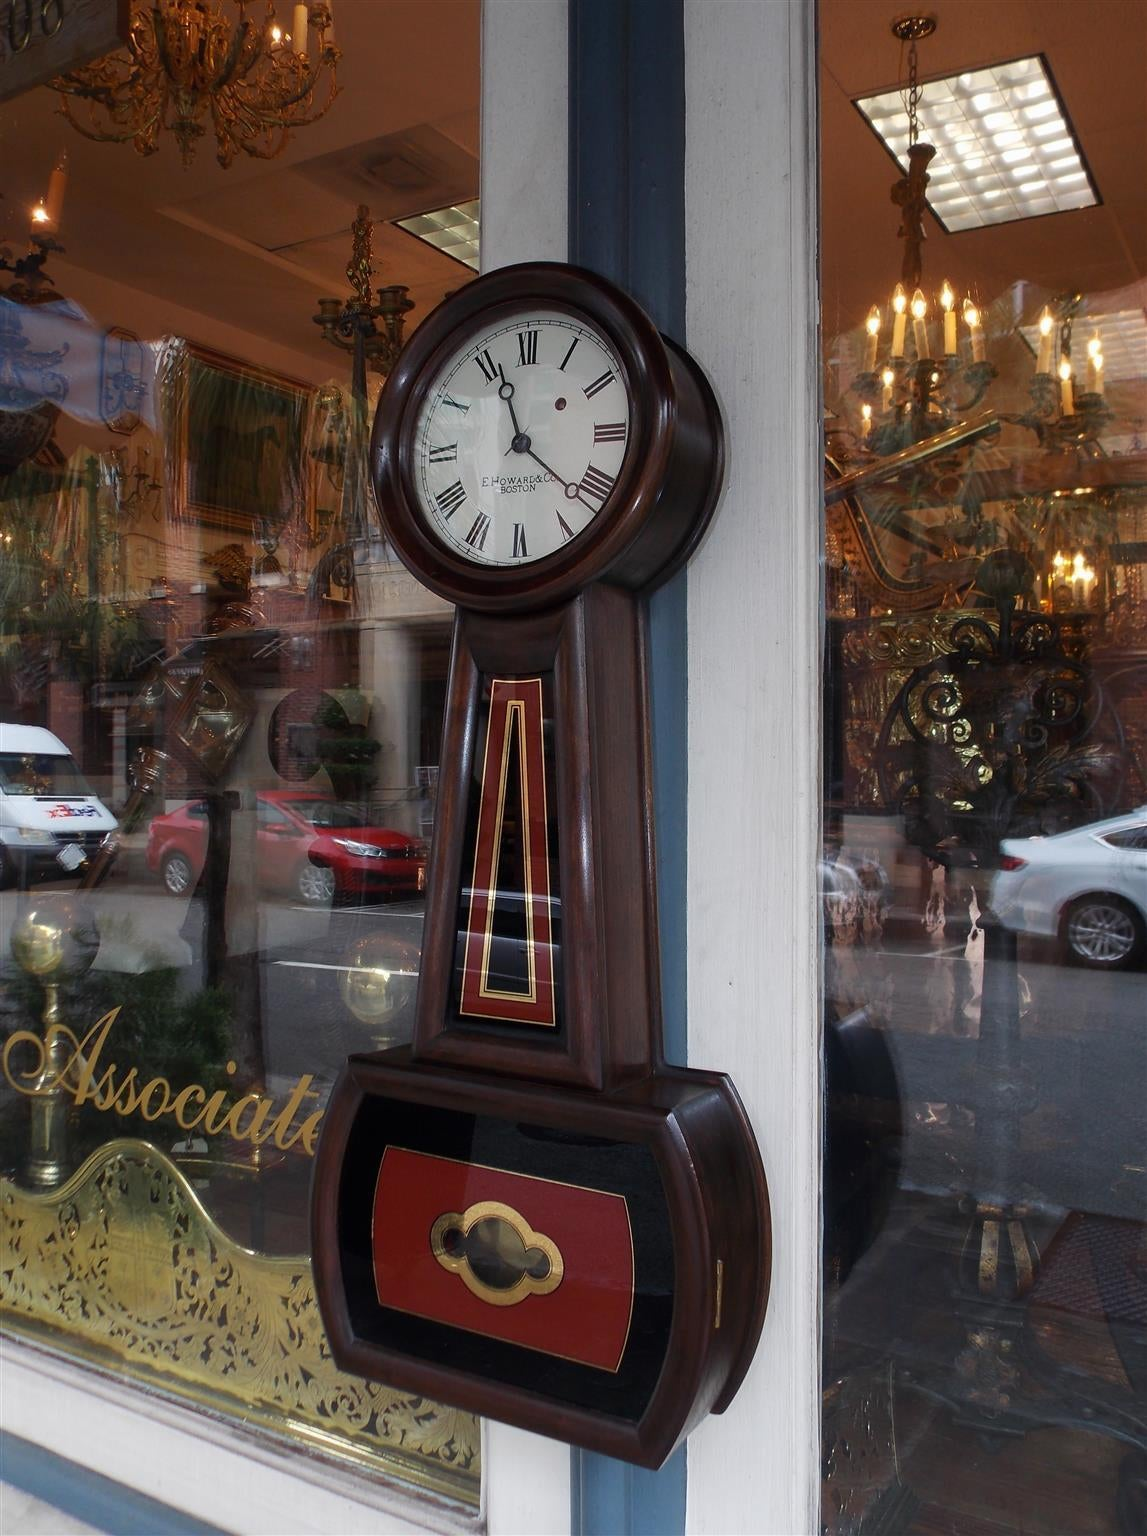 American mahogany and églomisé banjo clock with original signed and numeral paper dial under glass, decorative painted and gilt throat panel, with a hinged painted and gilt door concealing the brass pendulum. Clock is in working condition. Signed